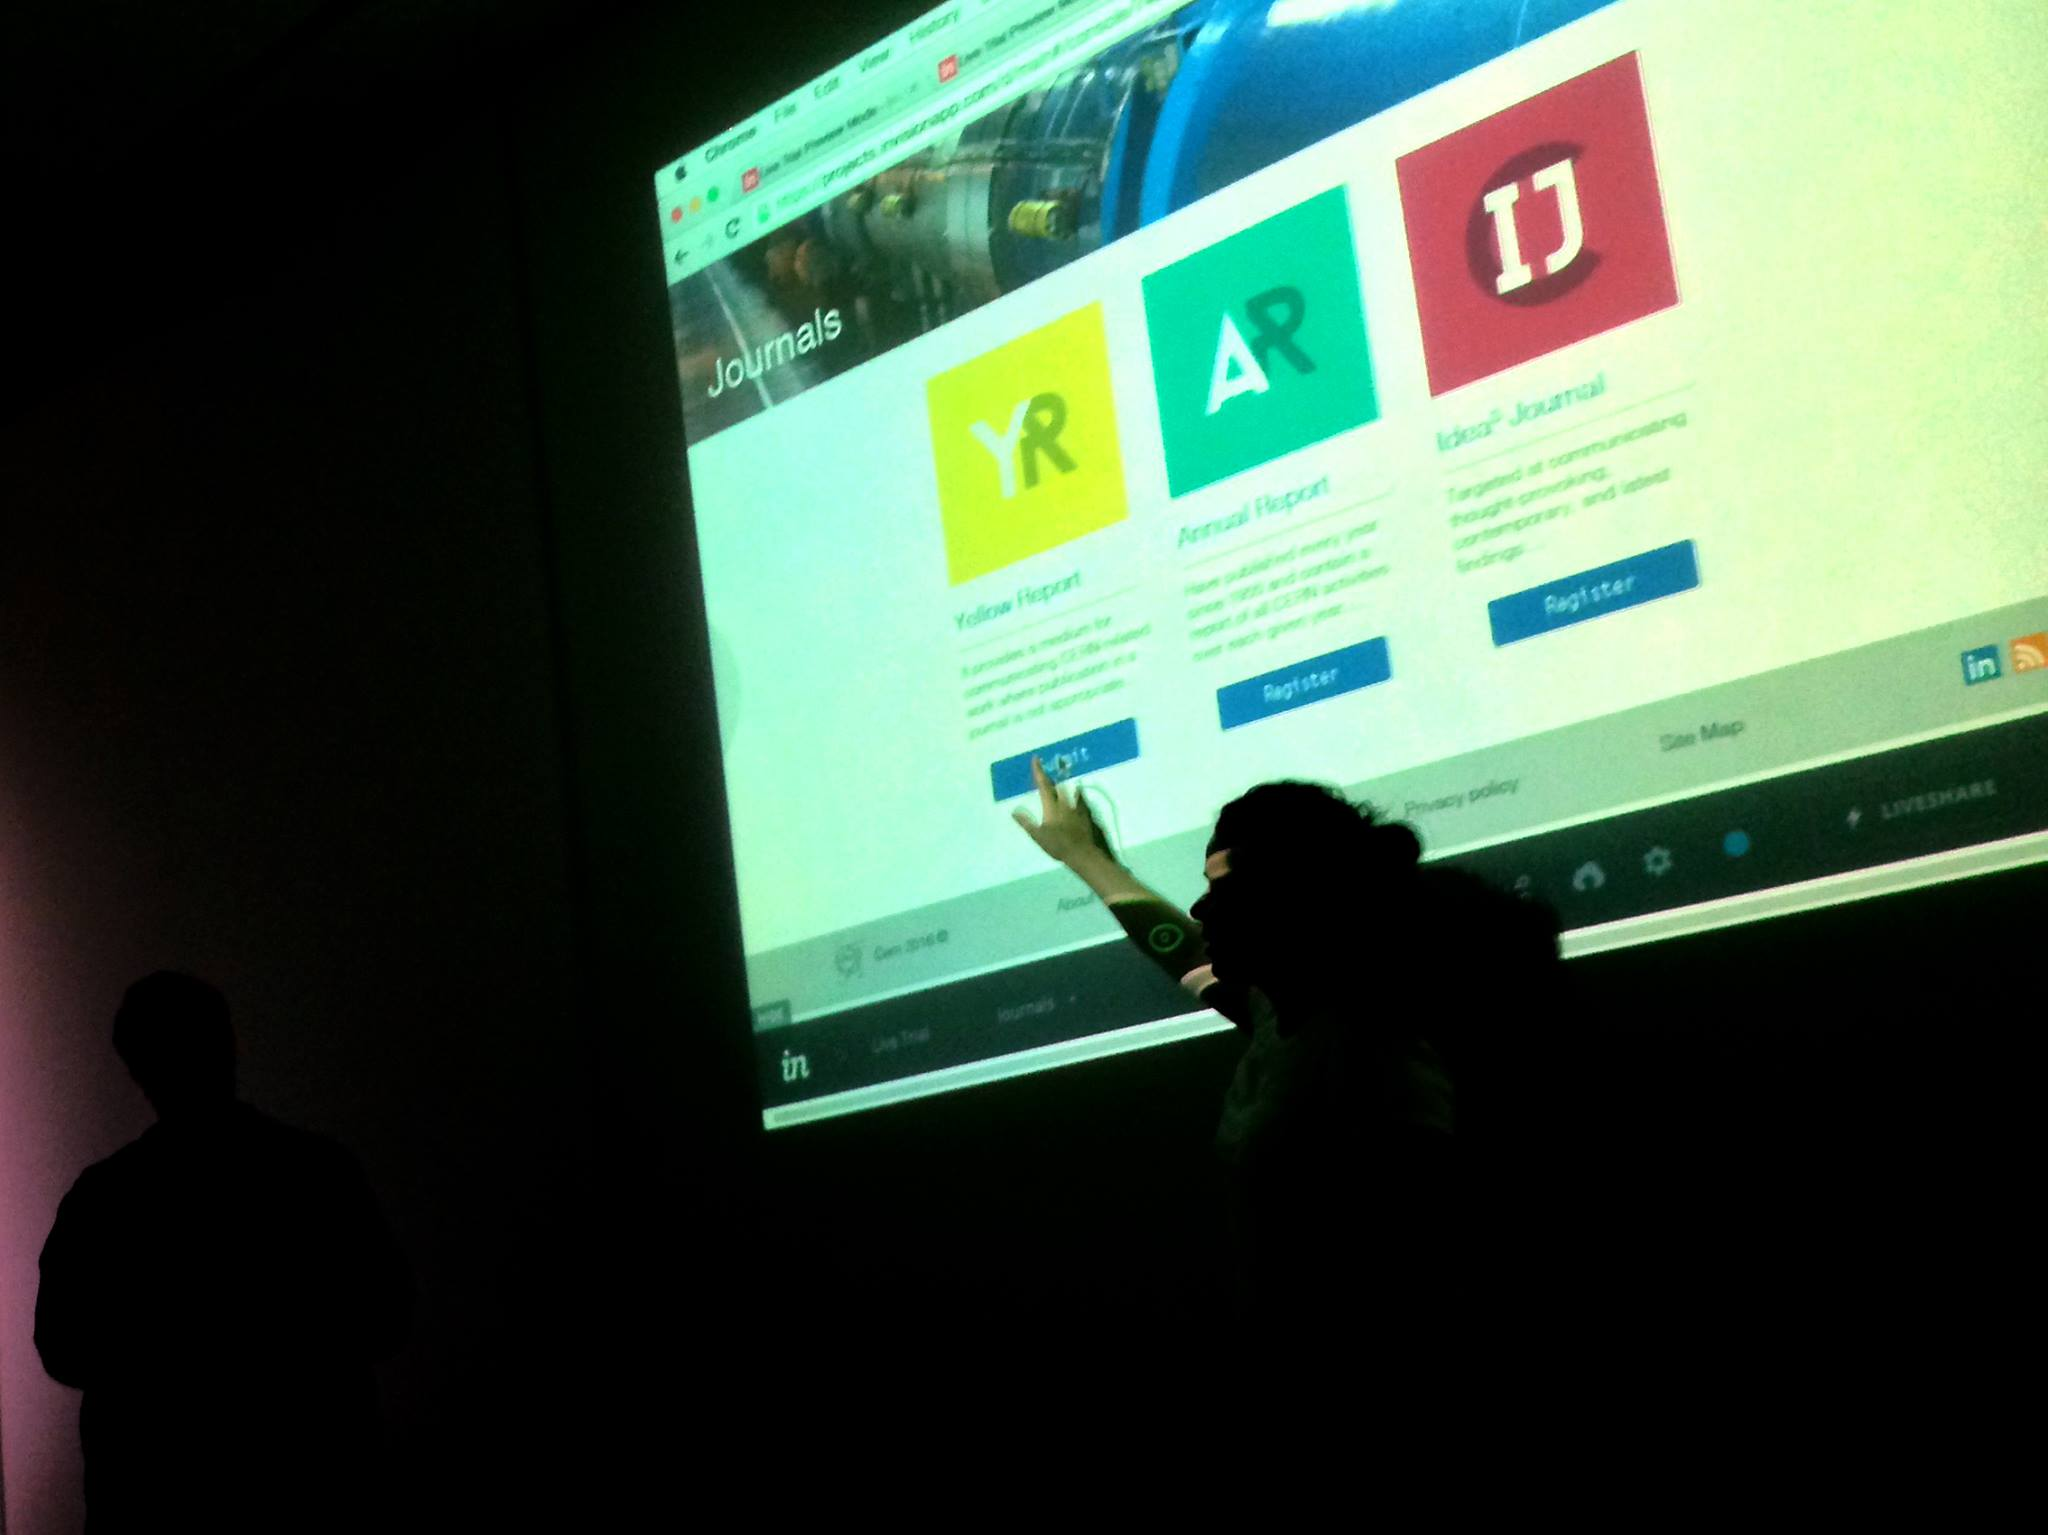 We used InVision in order to map out the site. It was also how the client controlled the live demo.